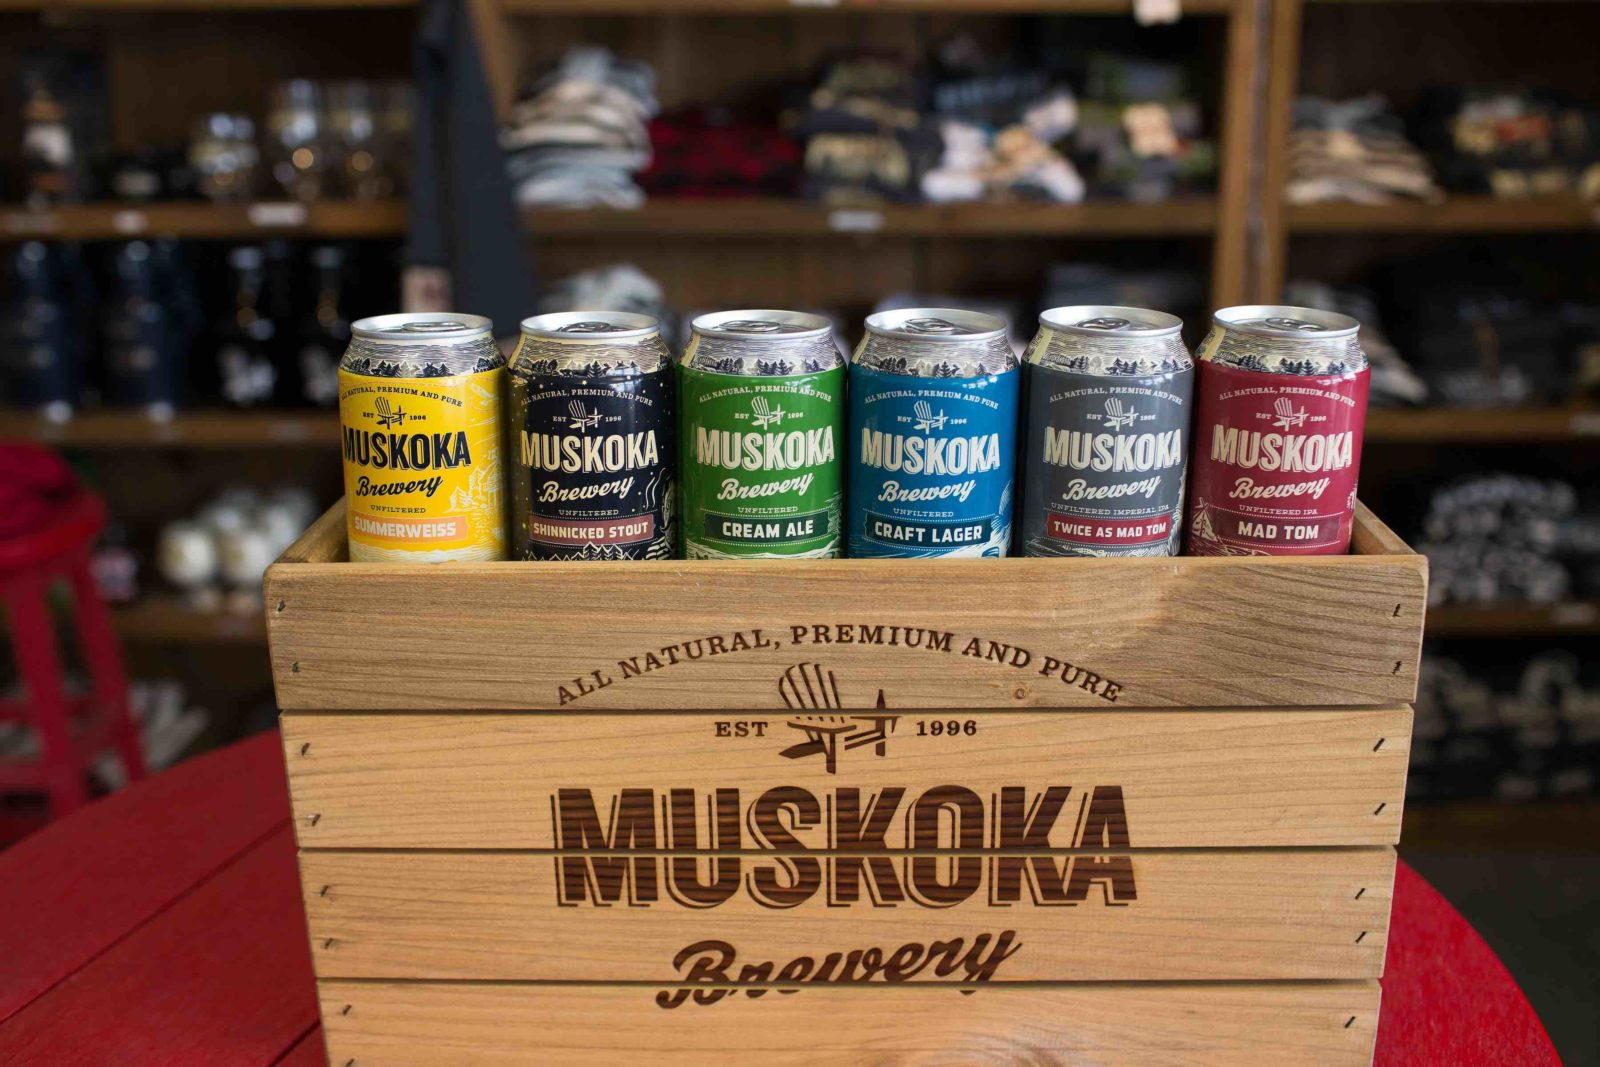 A line-up of Muskoka brewery beers in store